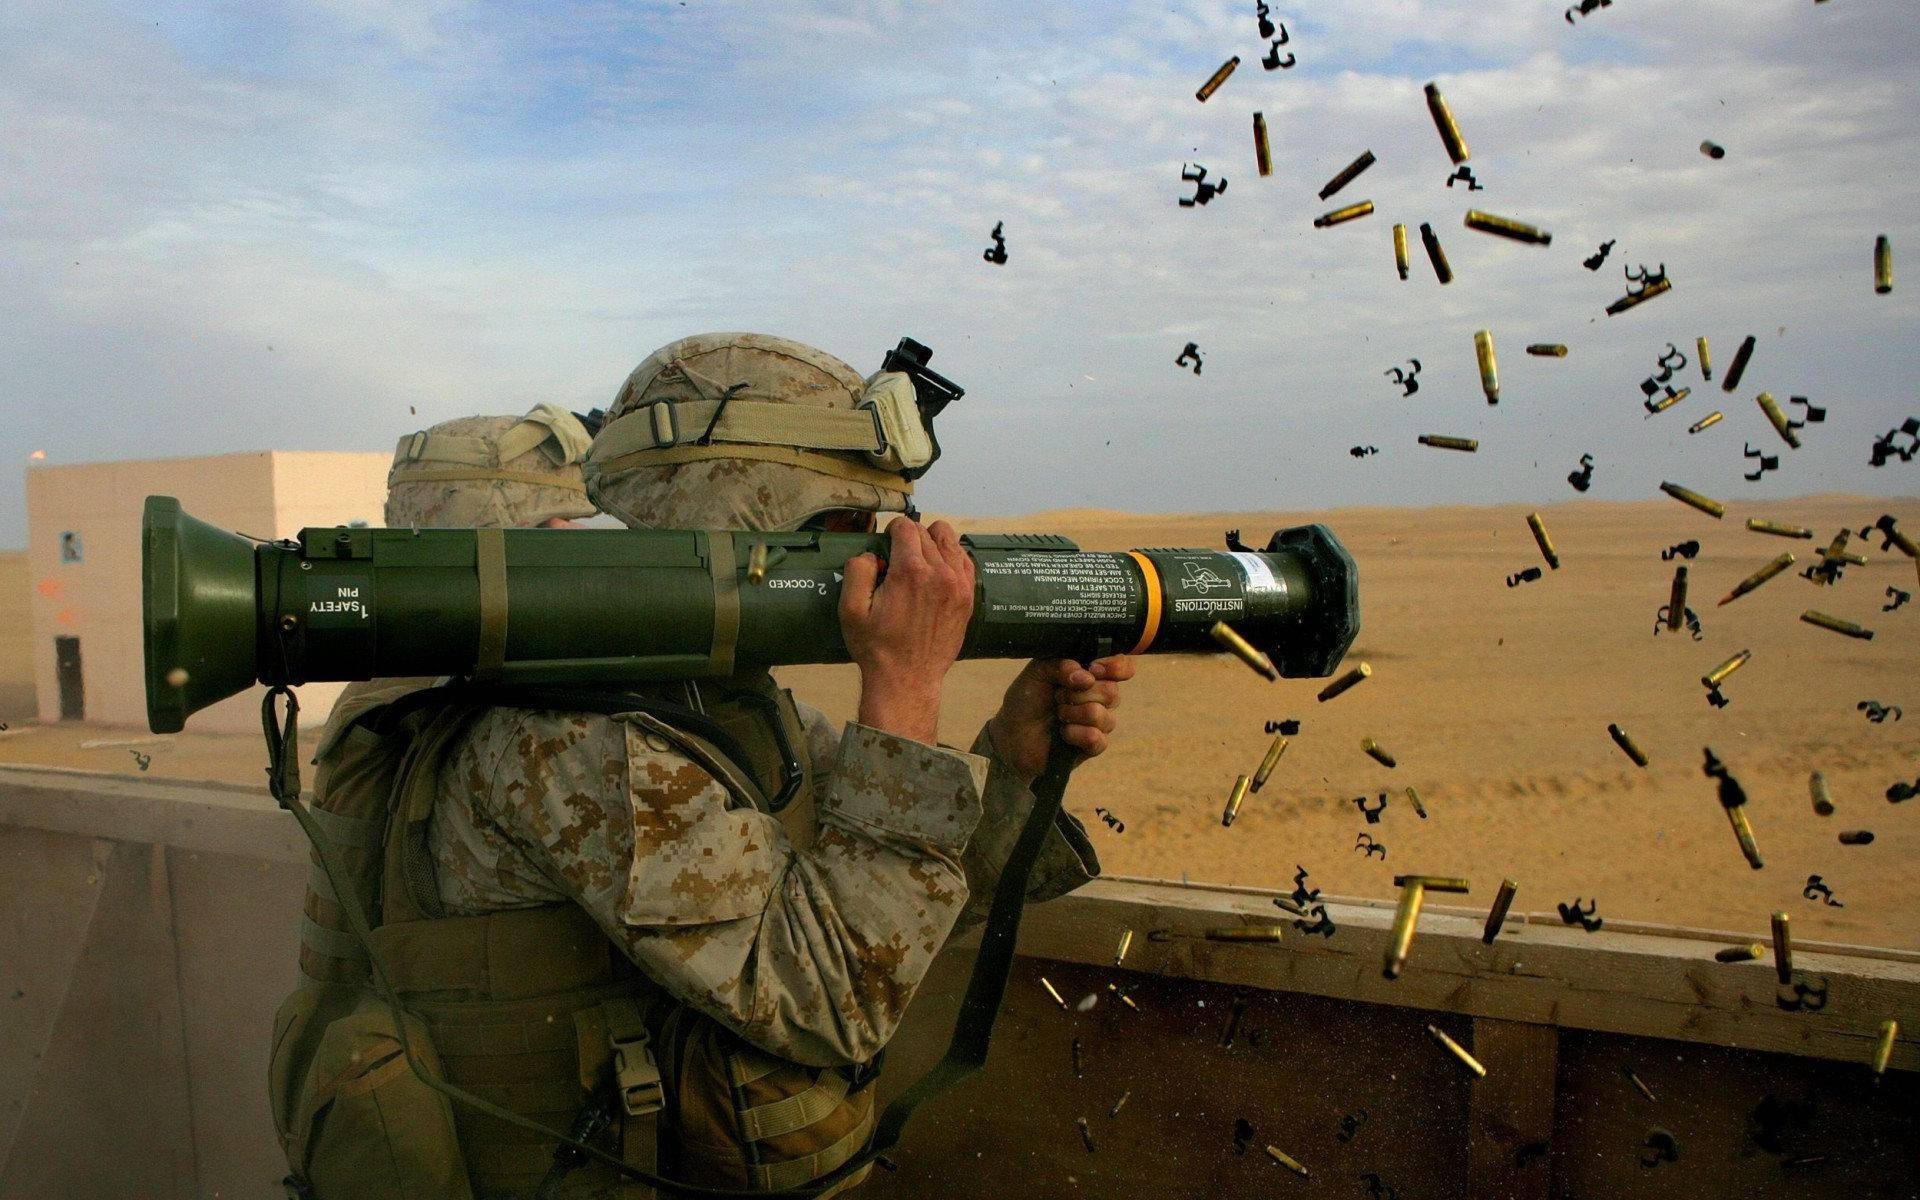 us soldiers in combat | Soldiers Wallpaper : Soldiers army Combat marines  rocket launcher .